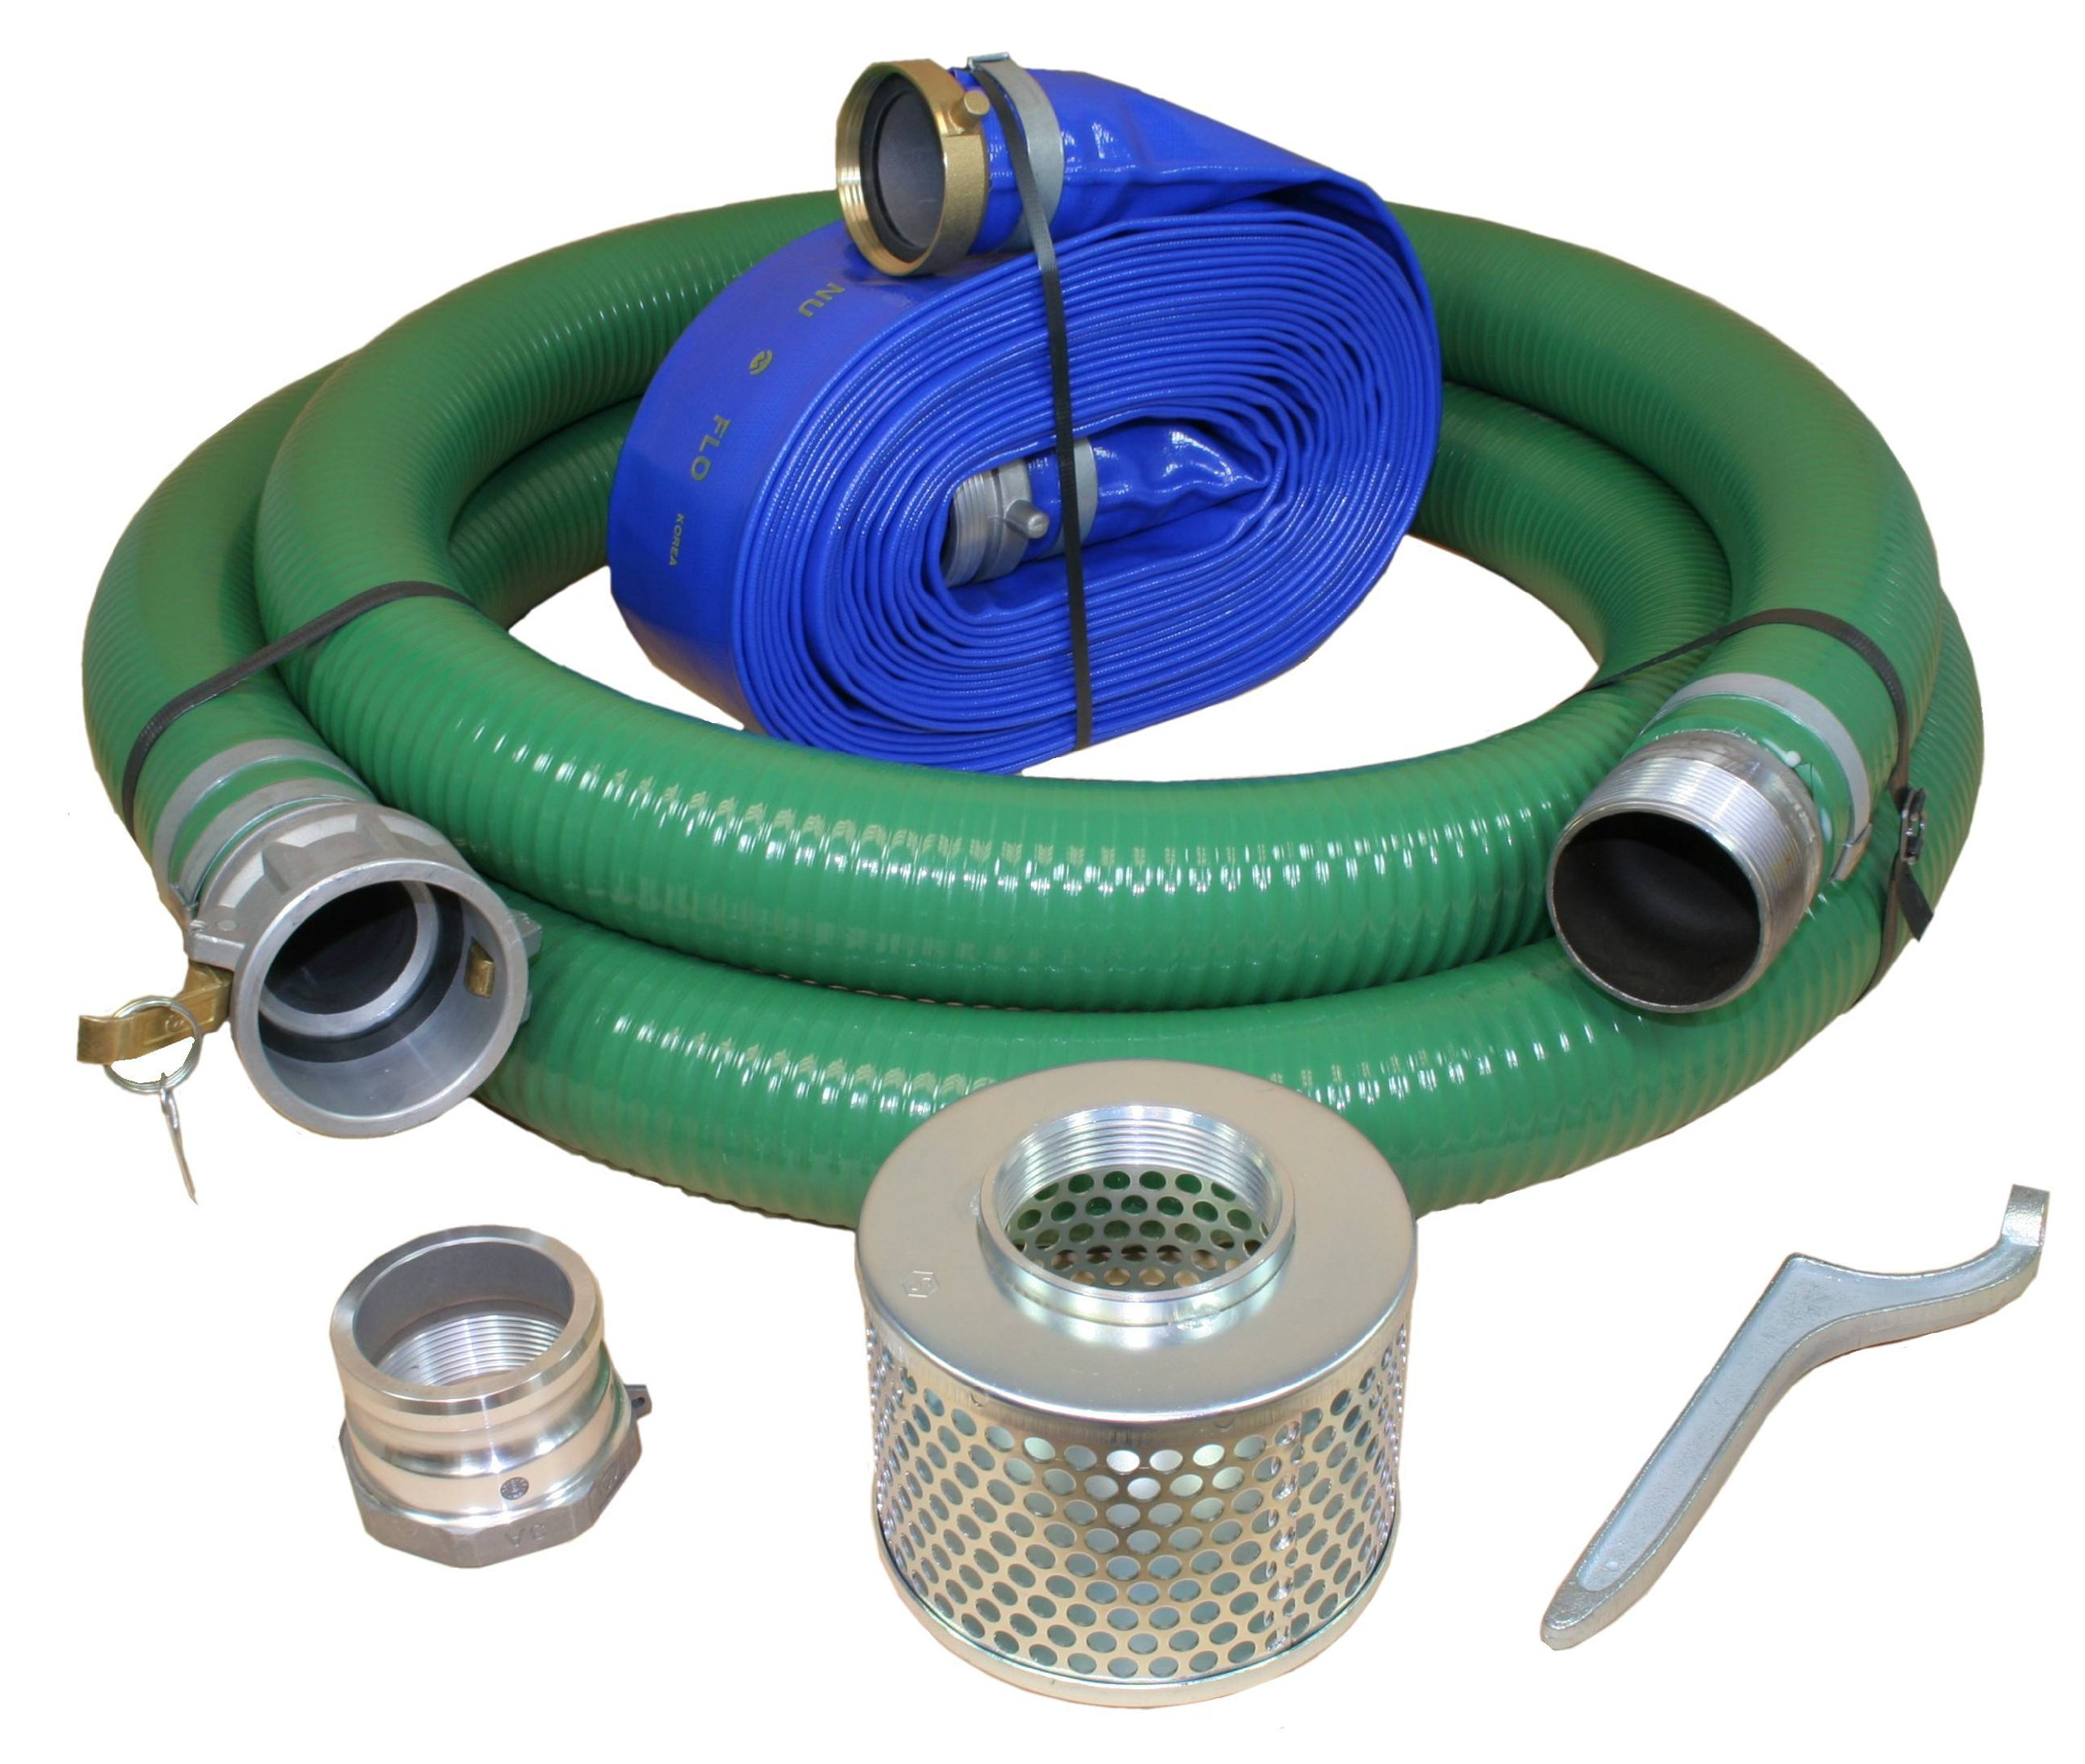 Abbott Rubber X1240-KIT-3000-1147-CN Water Pump Hose Kit, Includes 3-Inch Suction and Discharge Hose by Abbott Rubber